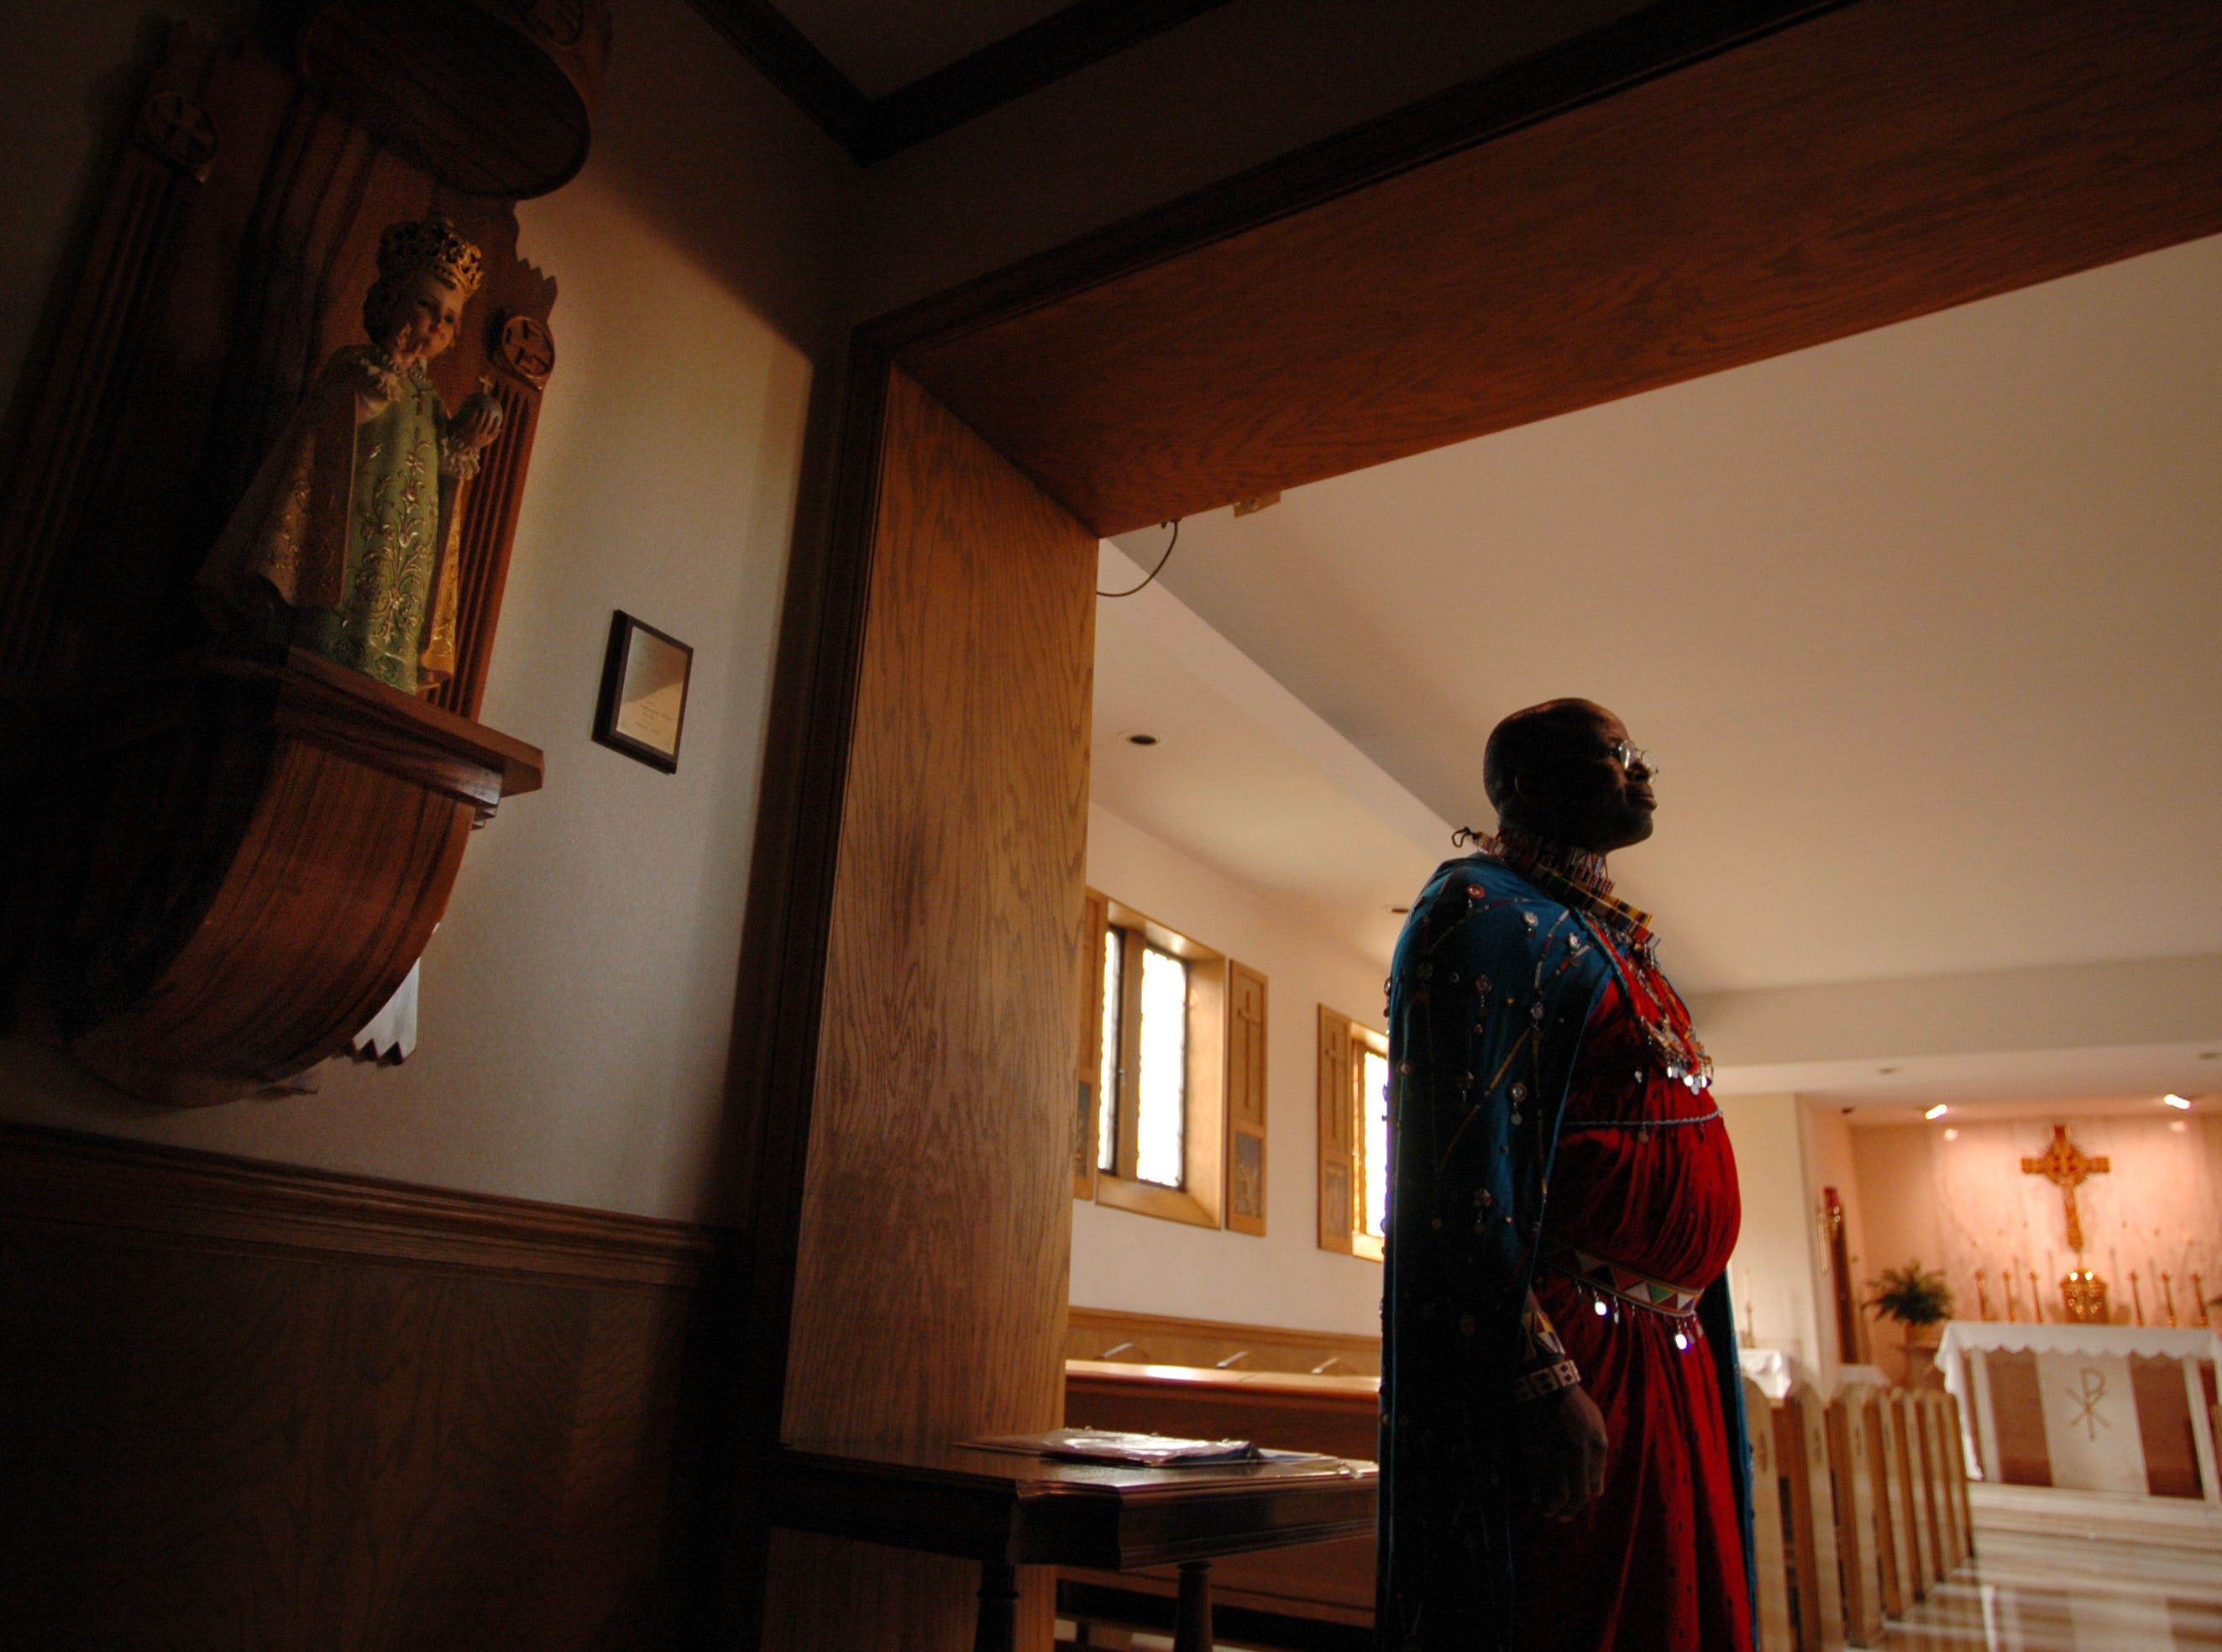 \Dressed in his traditional clothing, Josiah Muesha, a member of the Maasai community in Kenya, checks out the Chapel on his tour of St. Mary's Hospital in North Knoxville Tuesday afternoon. 10/18/2005